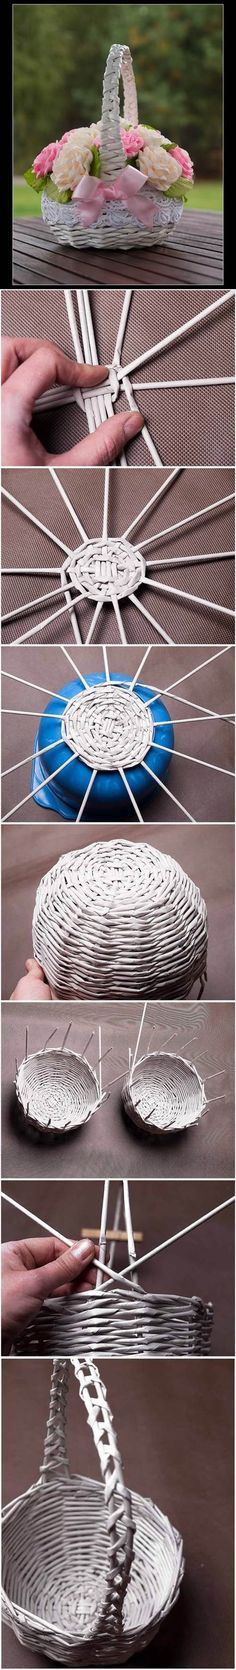 How to DIY Newspaper Tubes Weaving Basket Hobbies And Crafts, Fun Crafts, Diy And Crafts, Arts And Crafts, Newspaper Basket, Newspaper Crafts, Paper Weaving, Recycled Crafts, Diy Paper